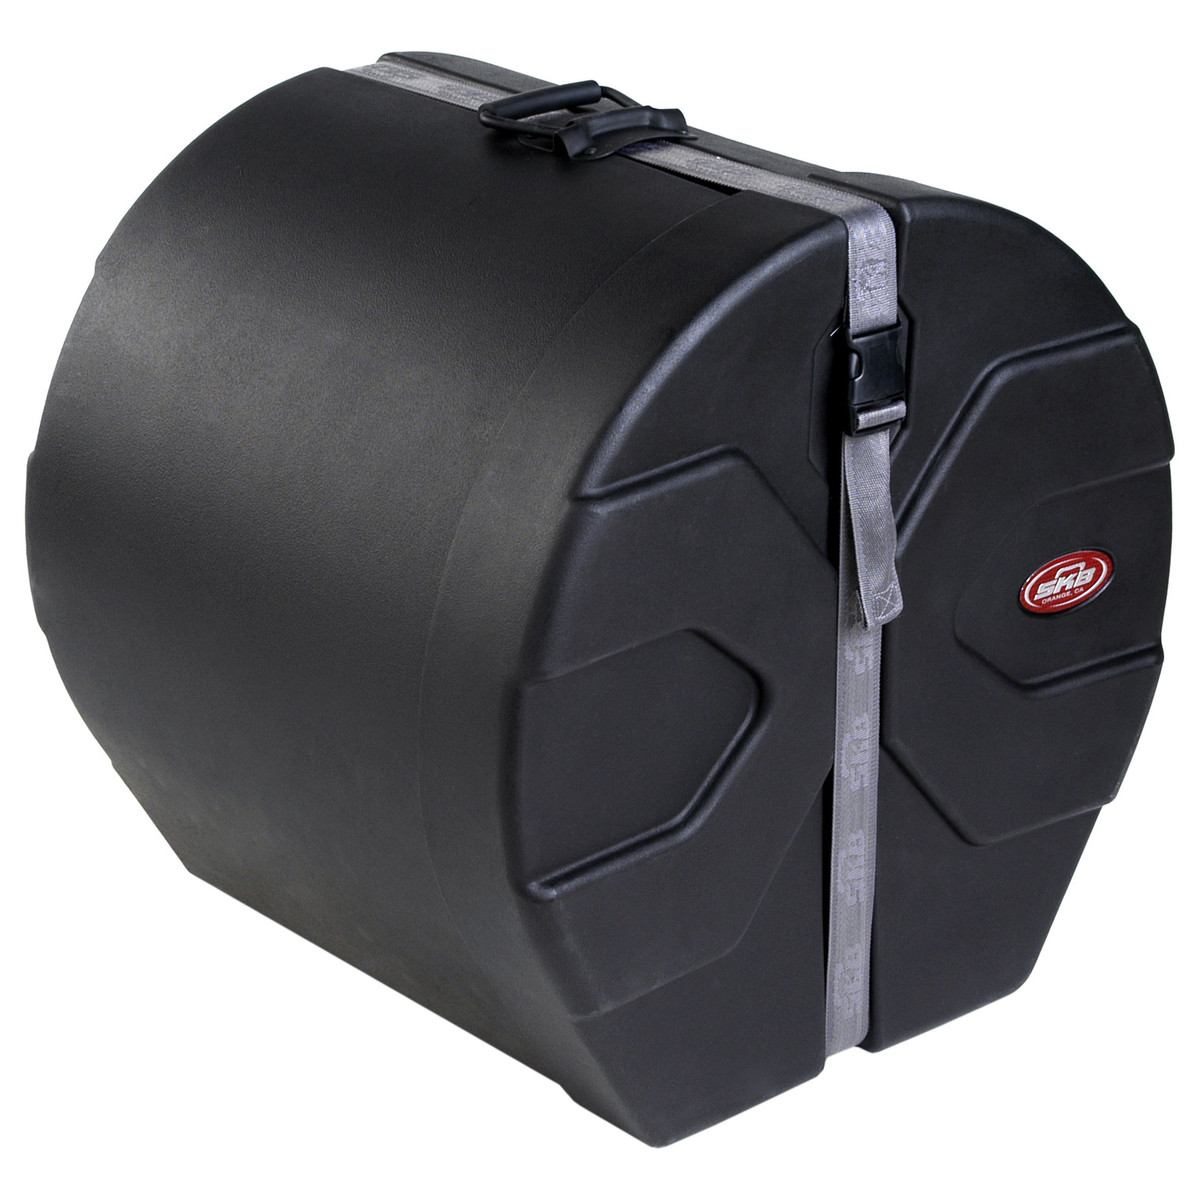 Skb 16 x 18 floor tom case with padded interior at for 16 floor tom case